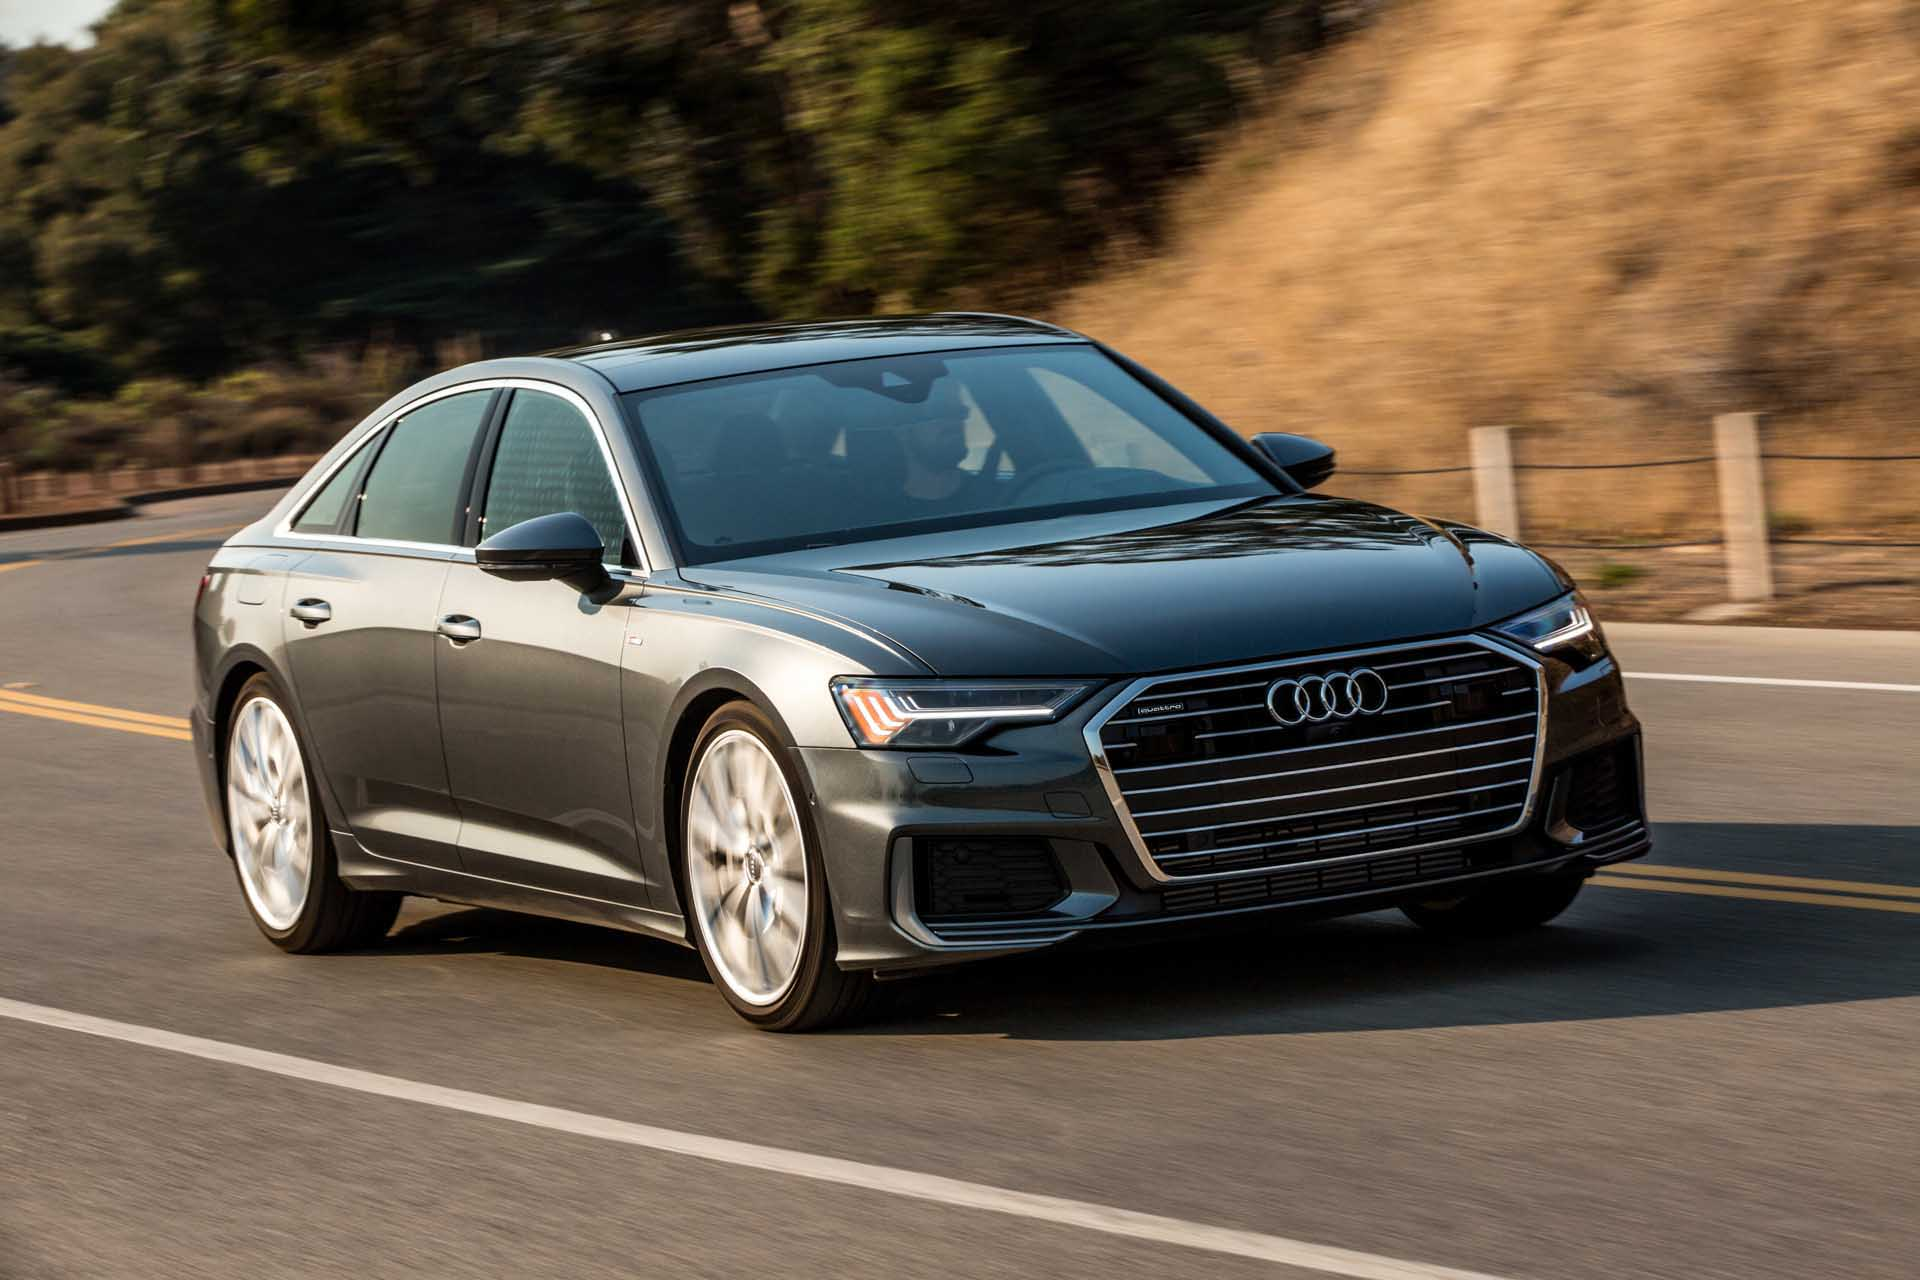 5 Audi A5 Review, Ratings, Specs, Prices, and Photos - The Car